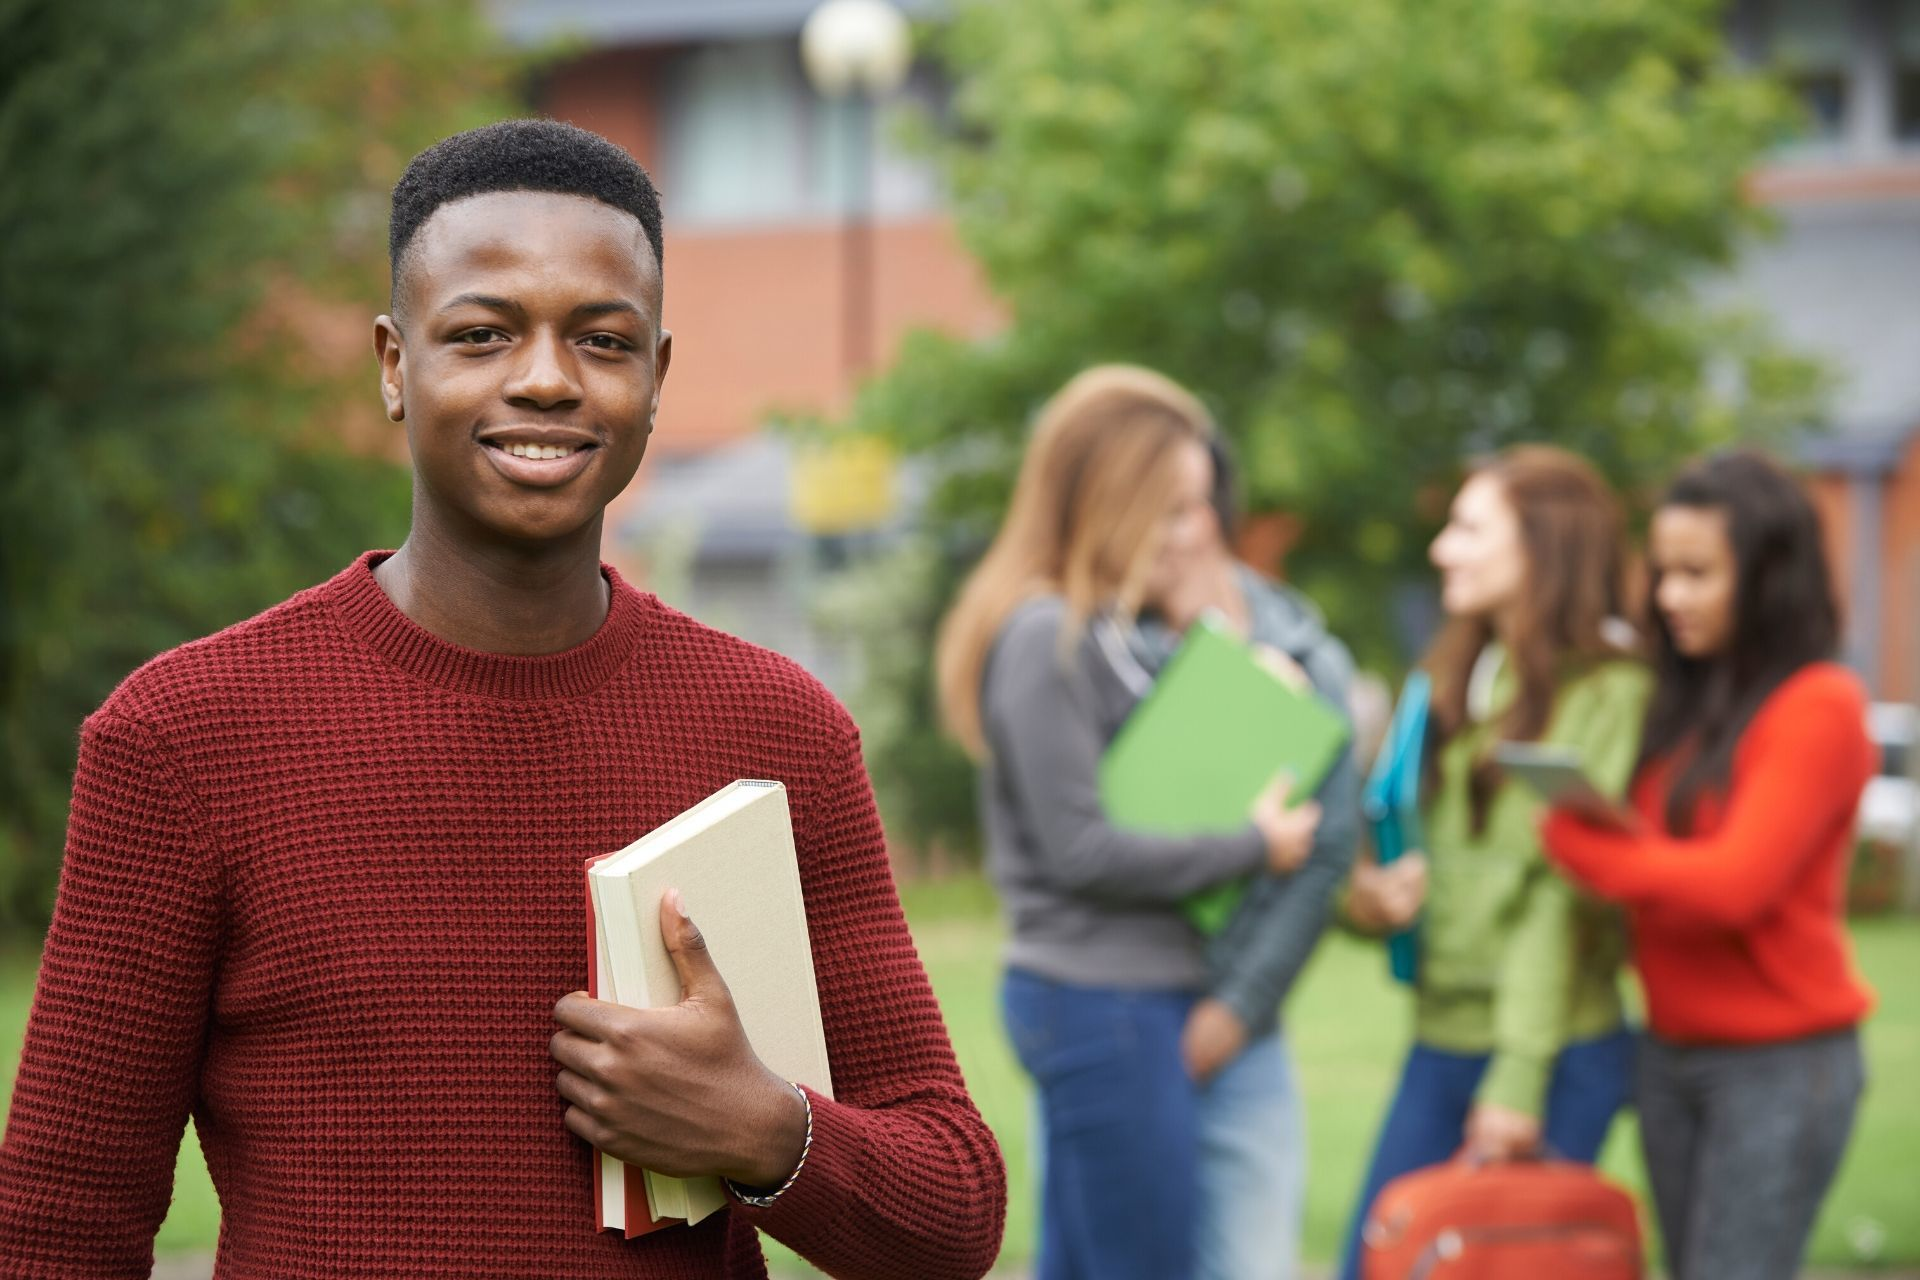 Planning a college trip: How to combine college visits with vacation